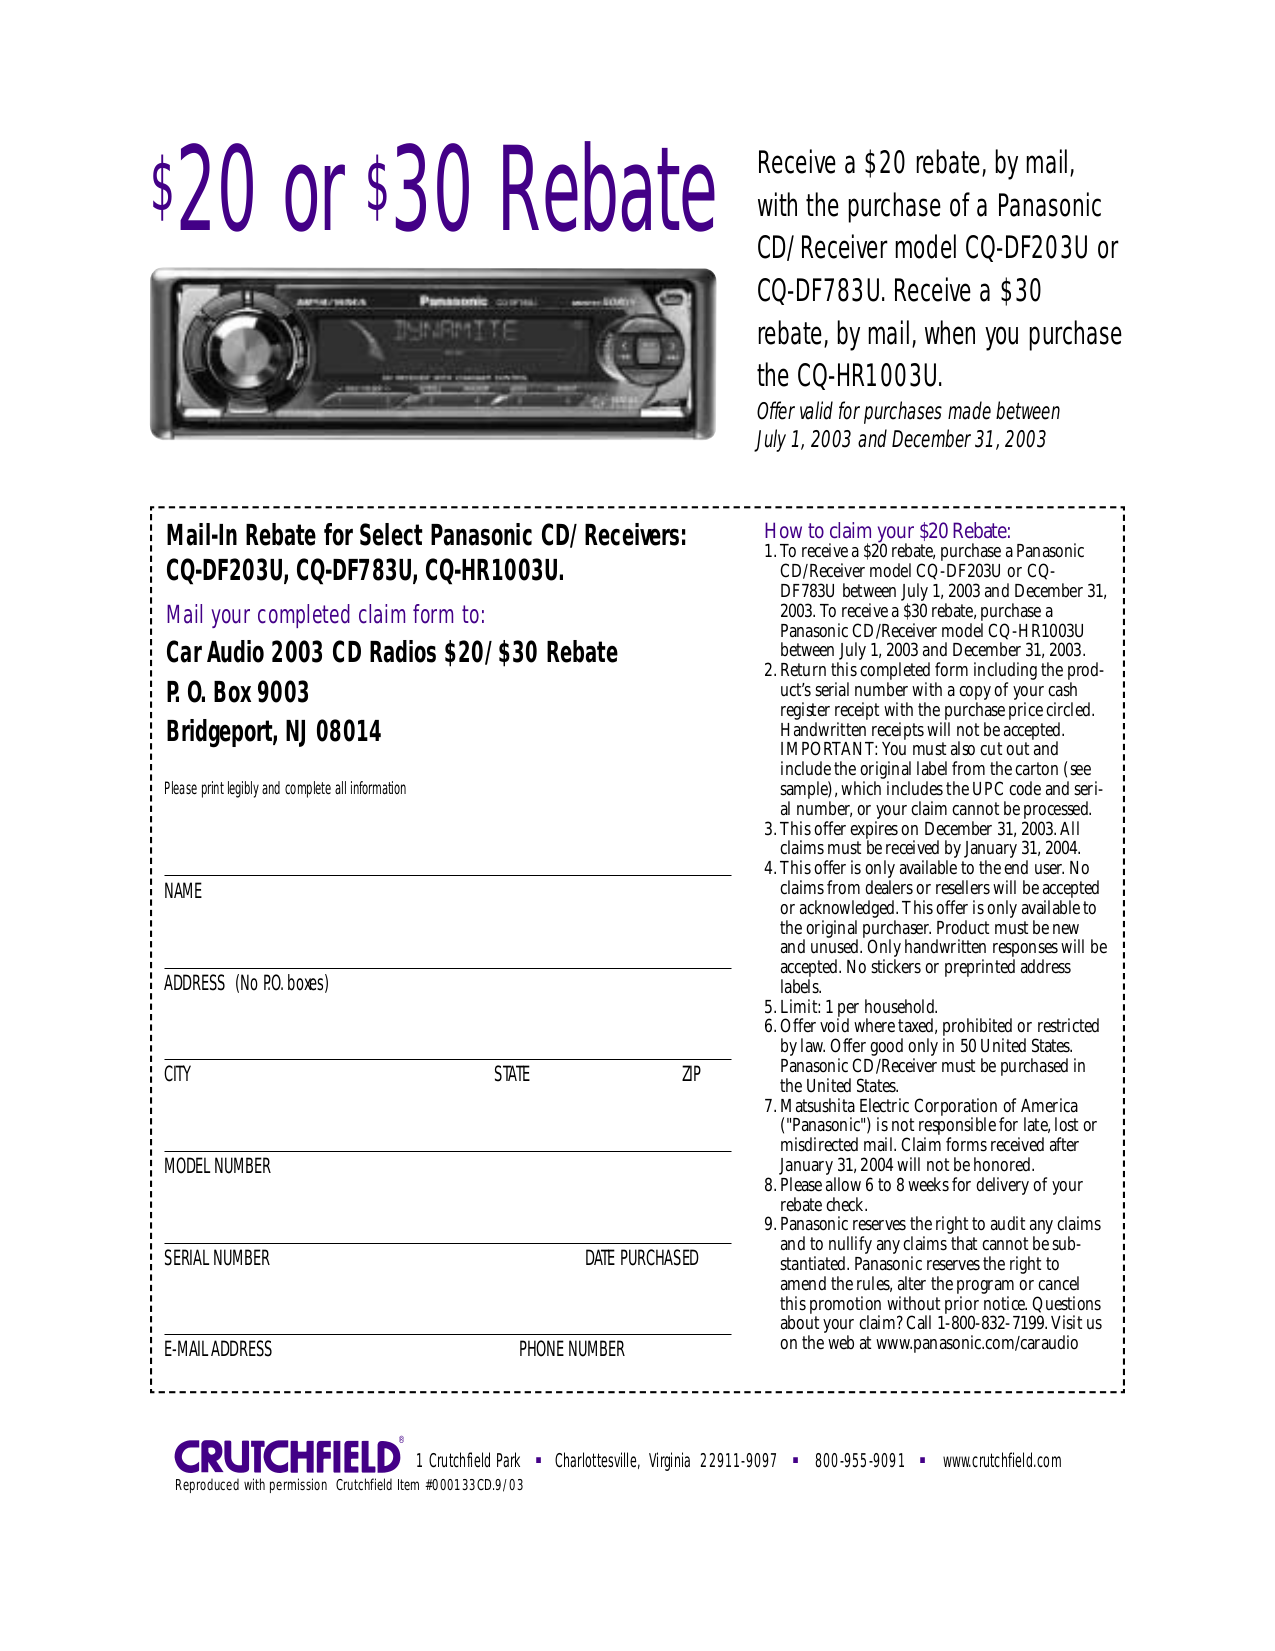 000133cd.pdf 0 download free pdf for panasonic cq hr1003u car receiver manual panasonic cq-hr1003u wiring diagram at crackthecode.co